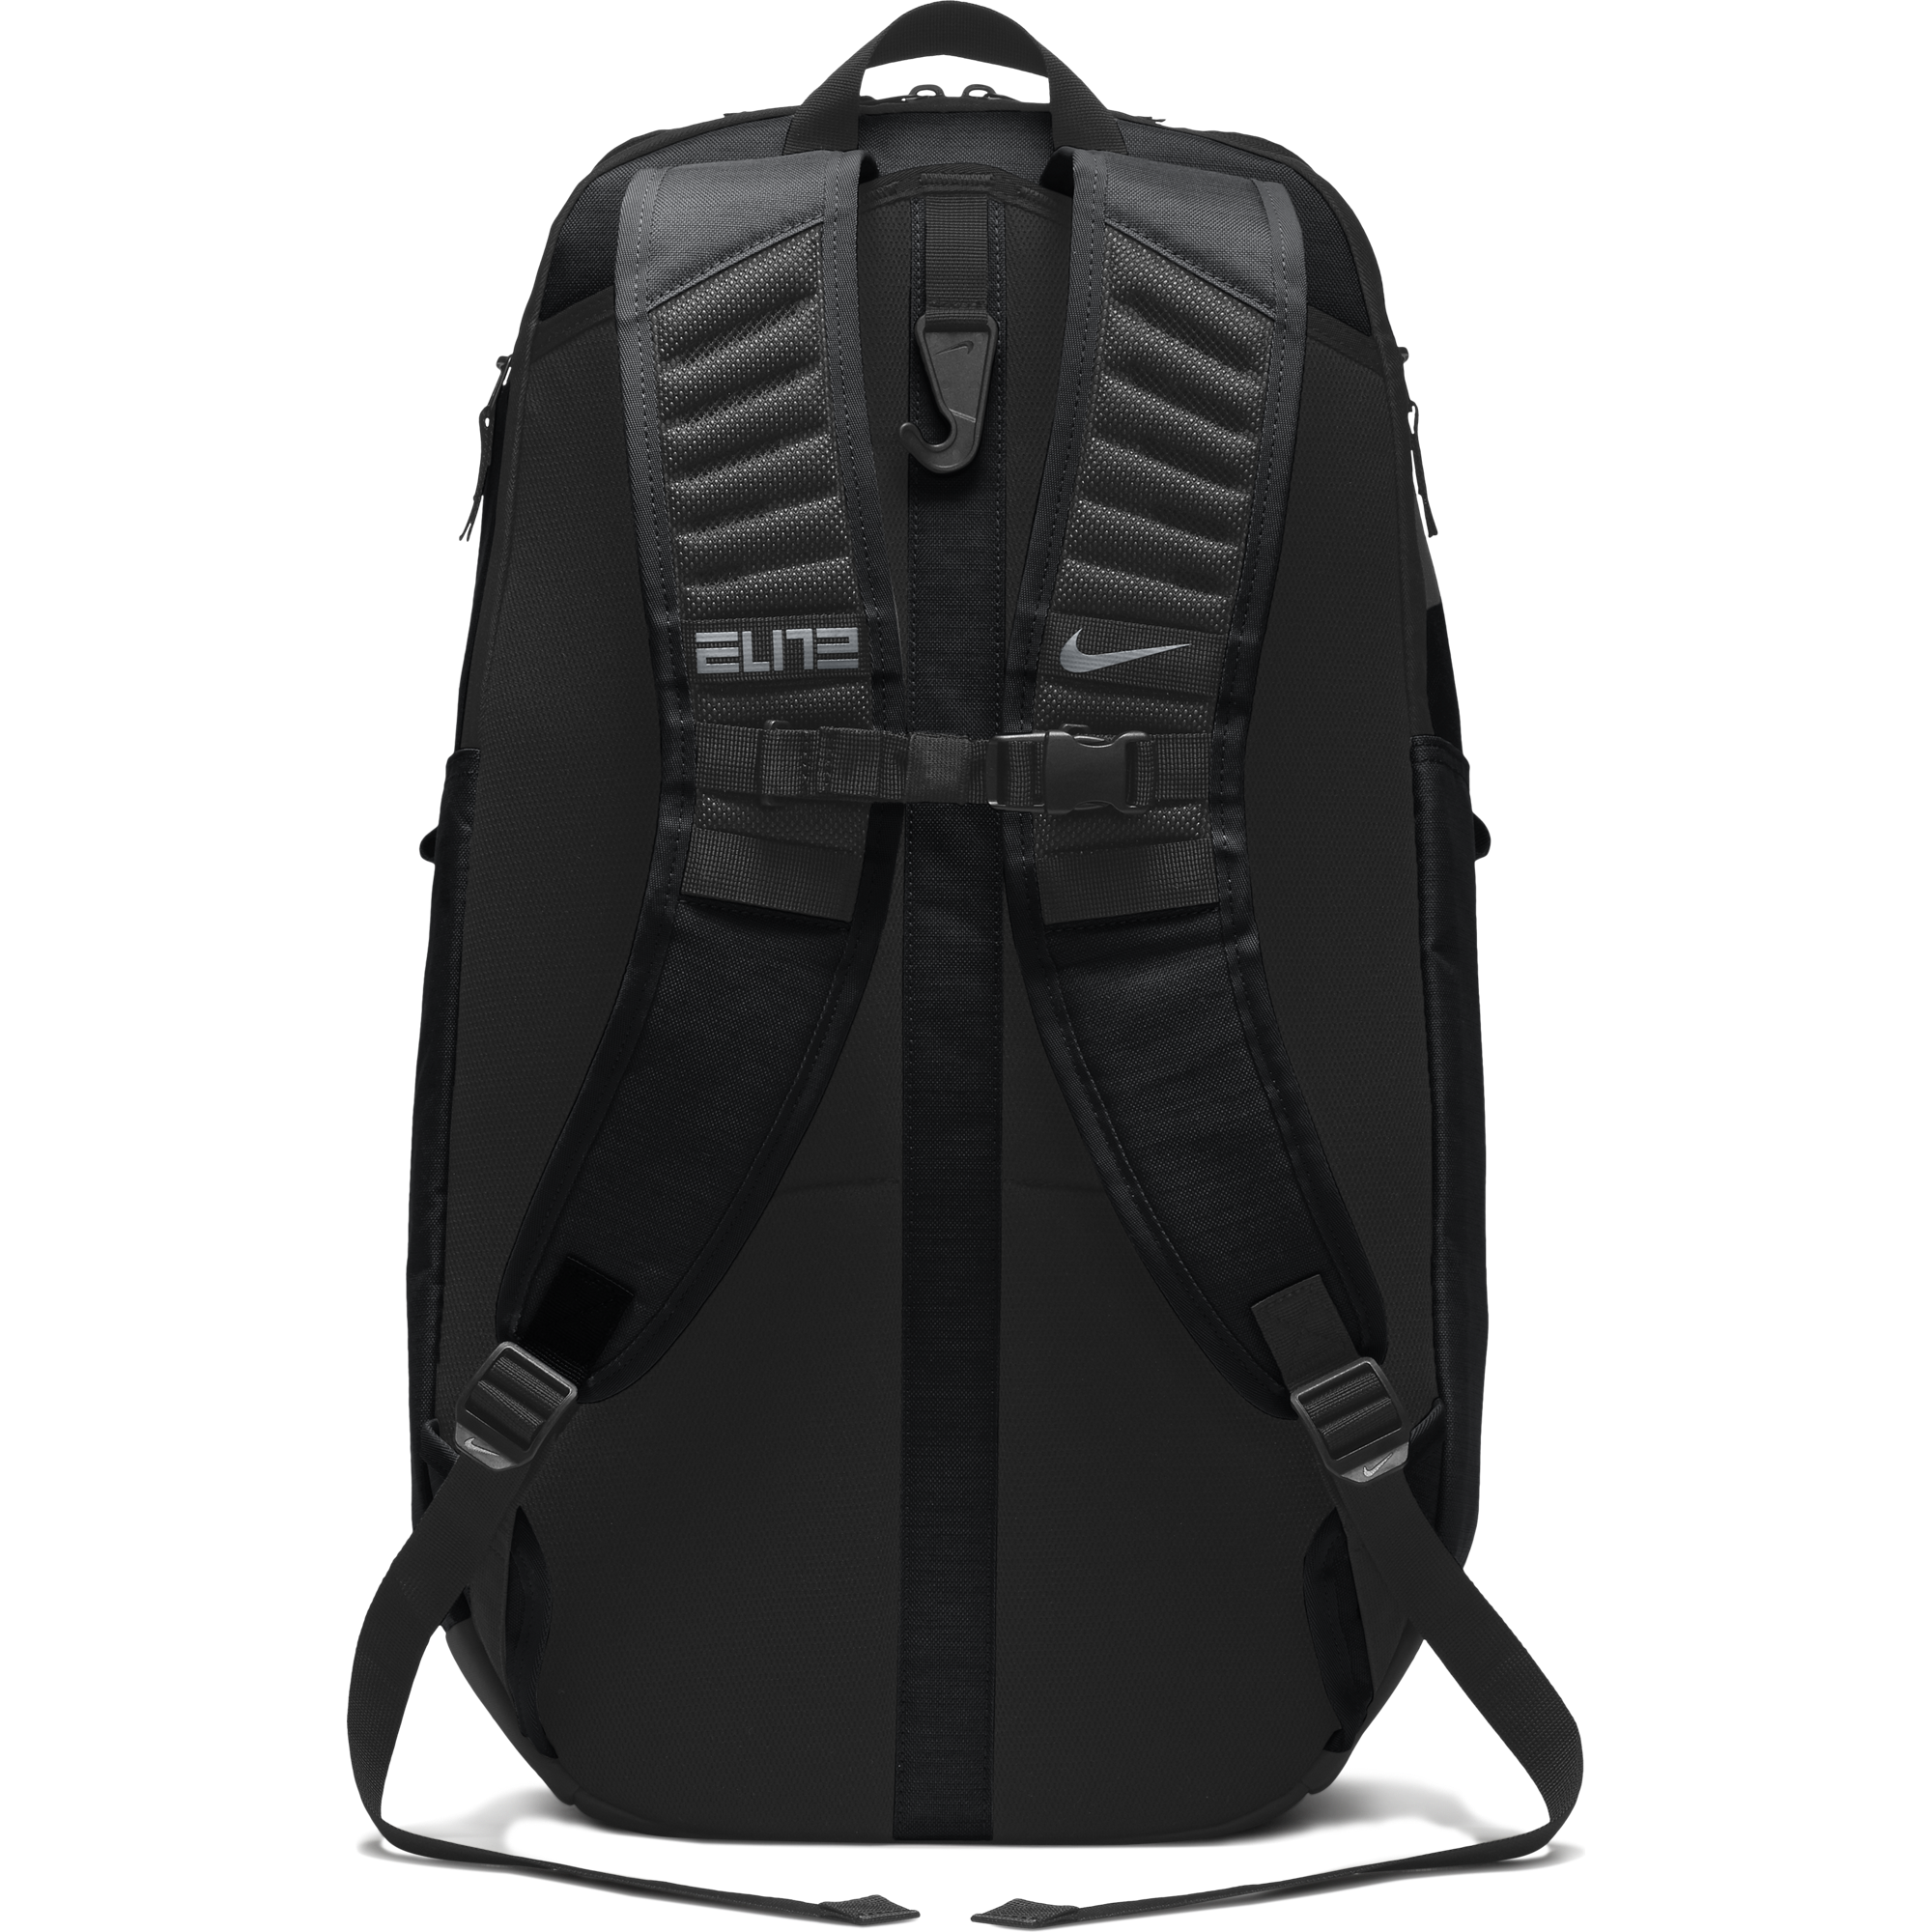 50b03fa1b5 NIKE HOOPS ELITE PRO BACKPACK for £50.00 | kicksmaniac.com | kicksmaniac.com